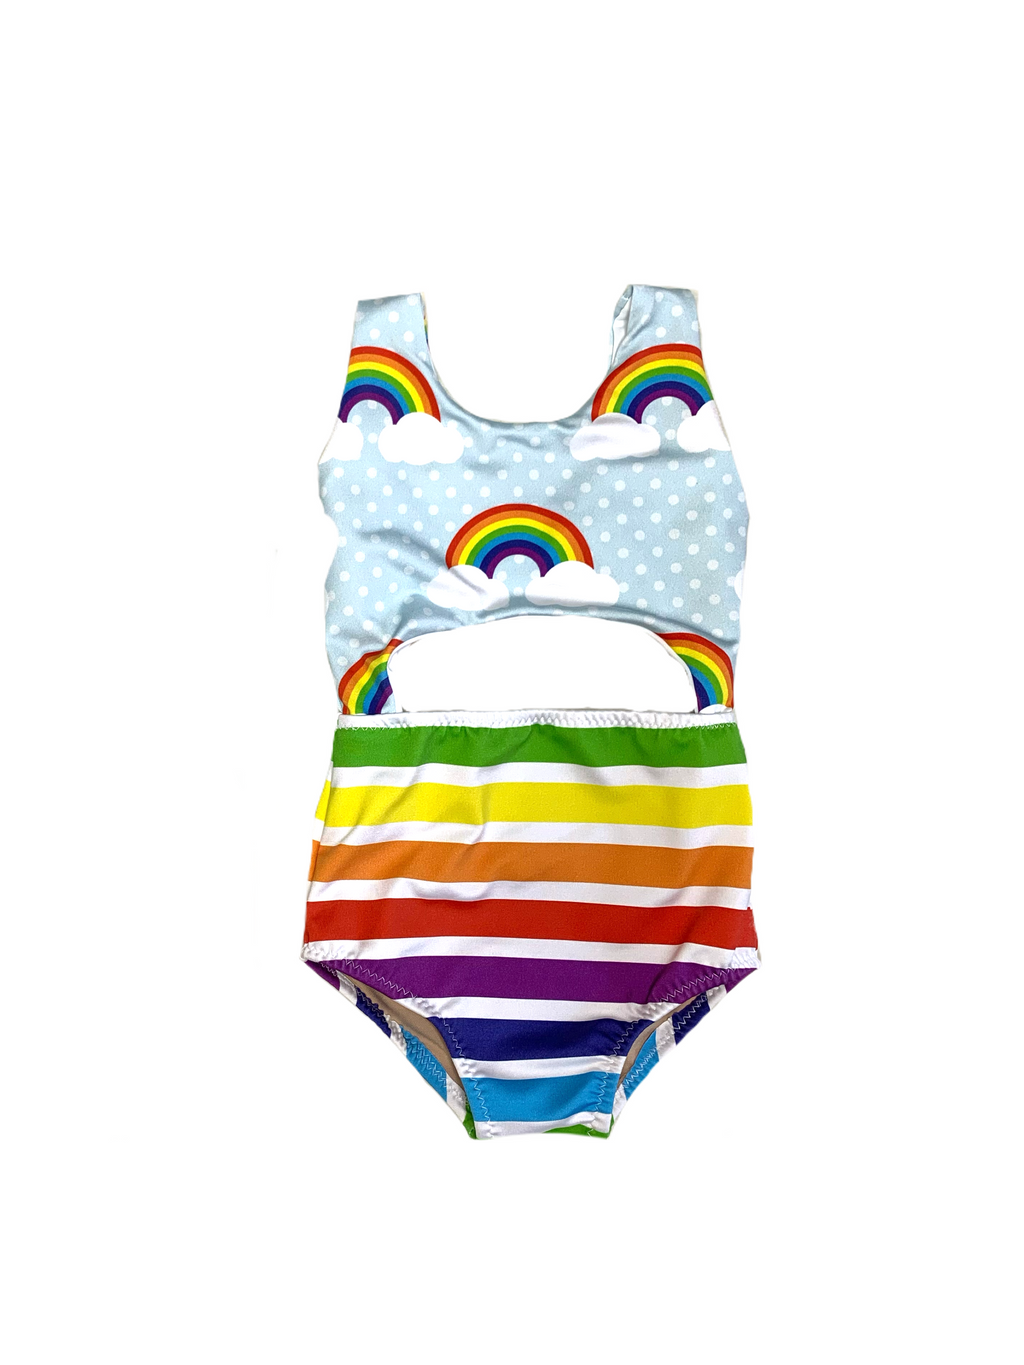 Colorful Rainbow with Stripes One Piece Swimsuit